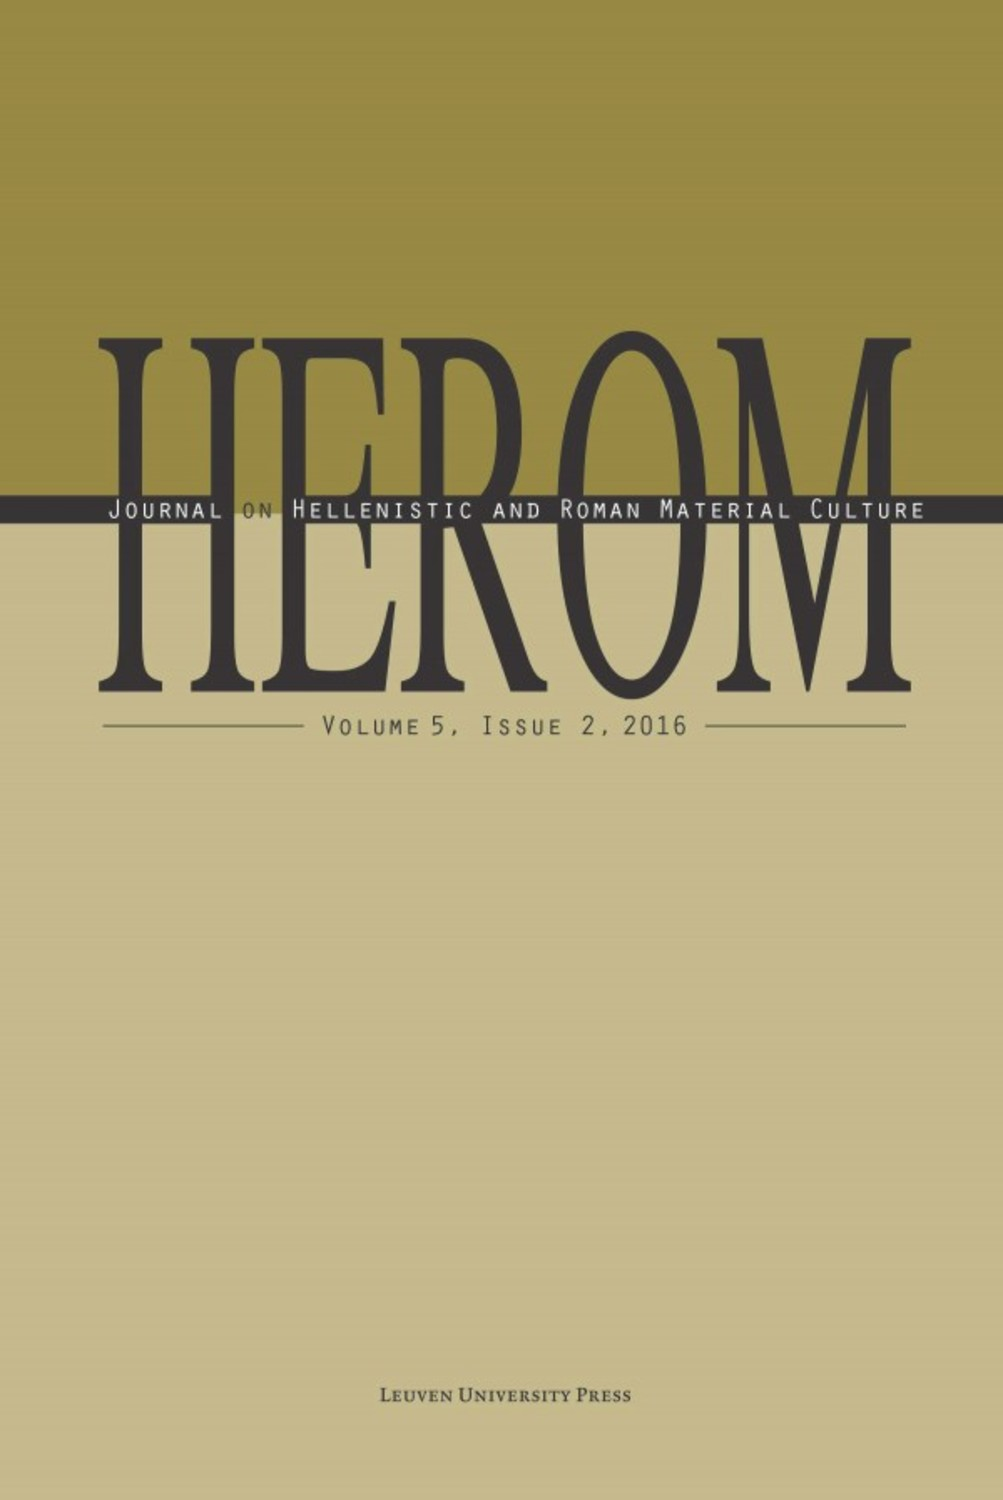 HEROM Volume 5 Issue 2, 2016 (Journal Subscription)